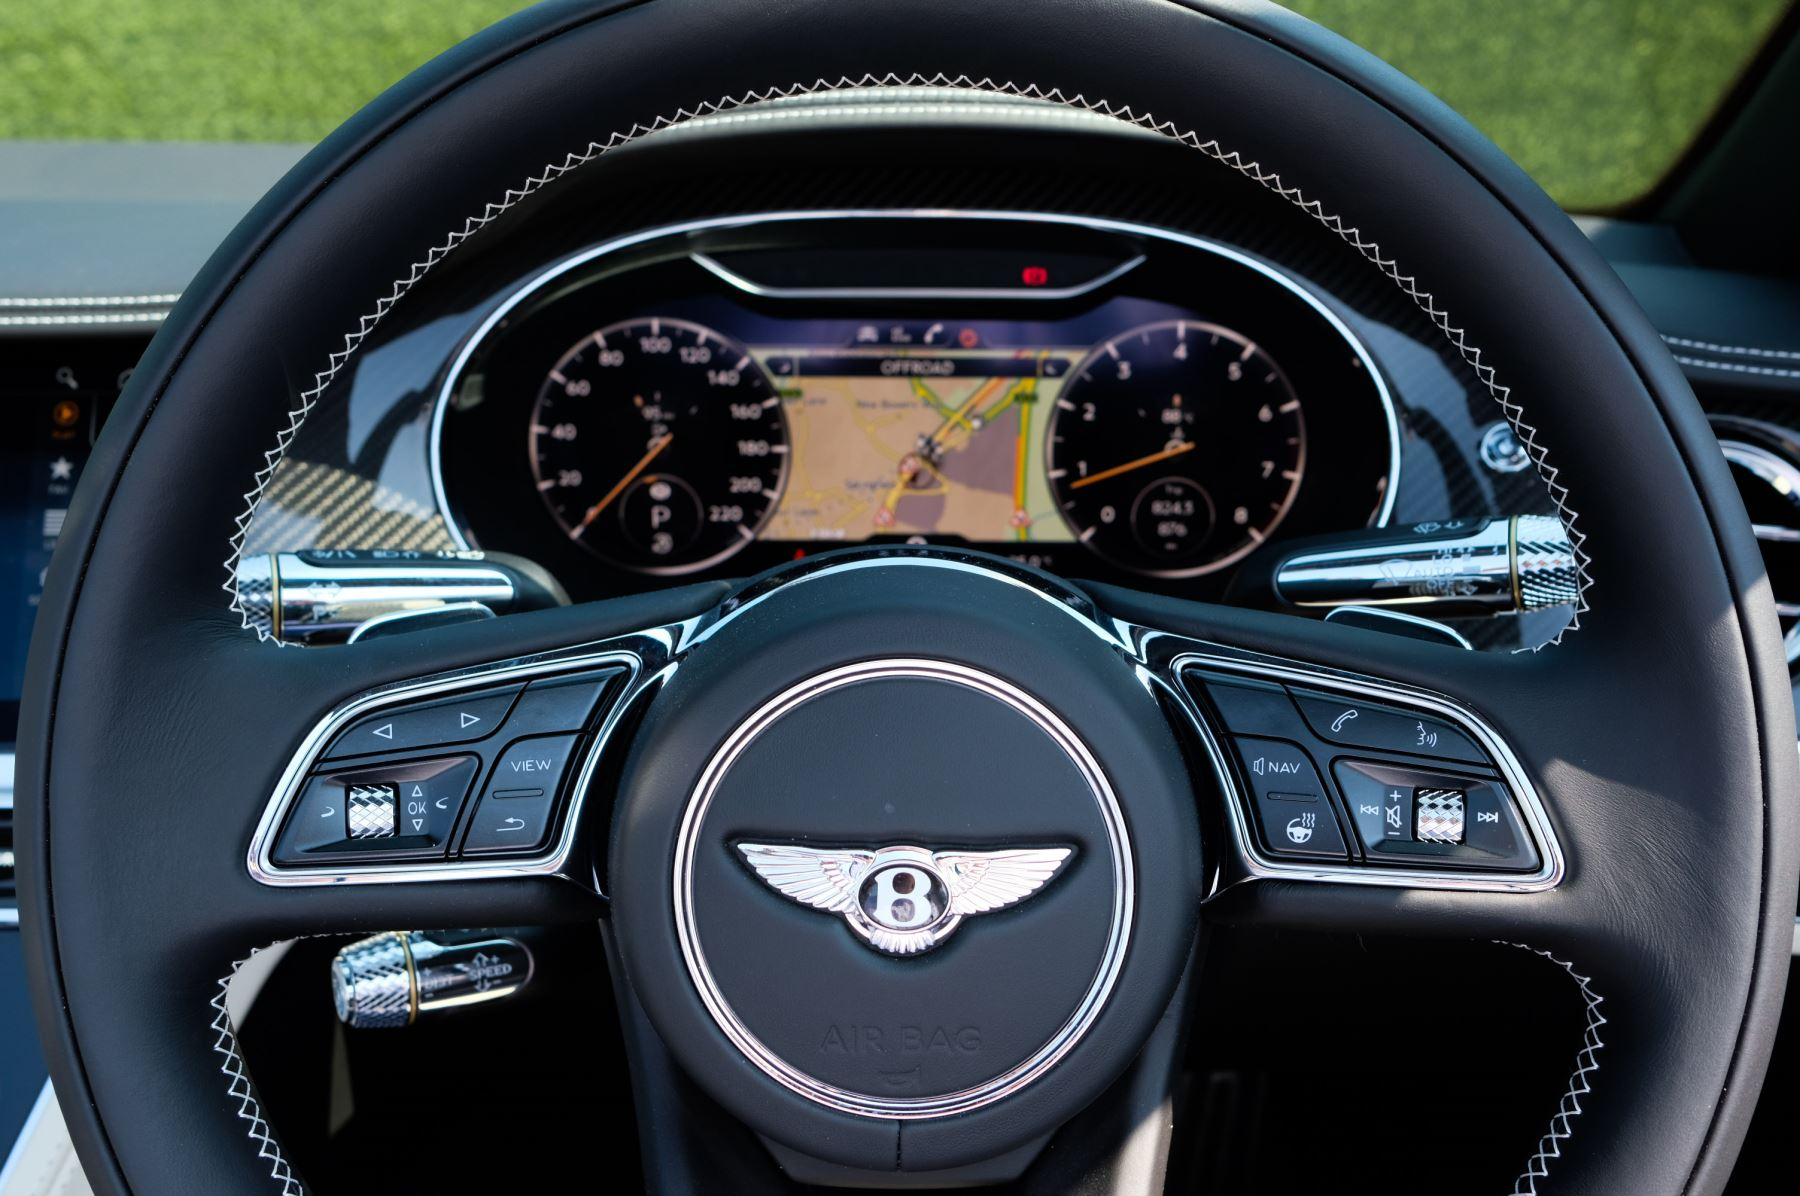 Bentley Continental GTC 4.0 V8 - Mulliner Driving Specification and Blackline Specification with 22 Inch Alloys image 15